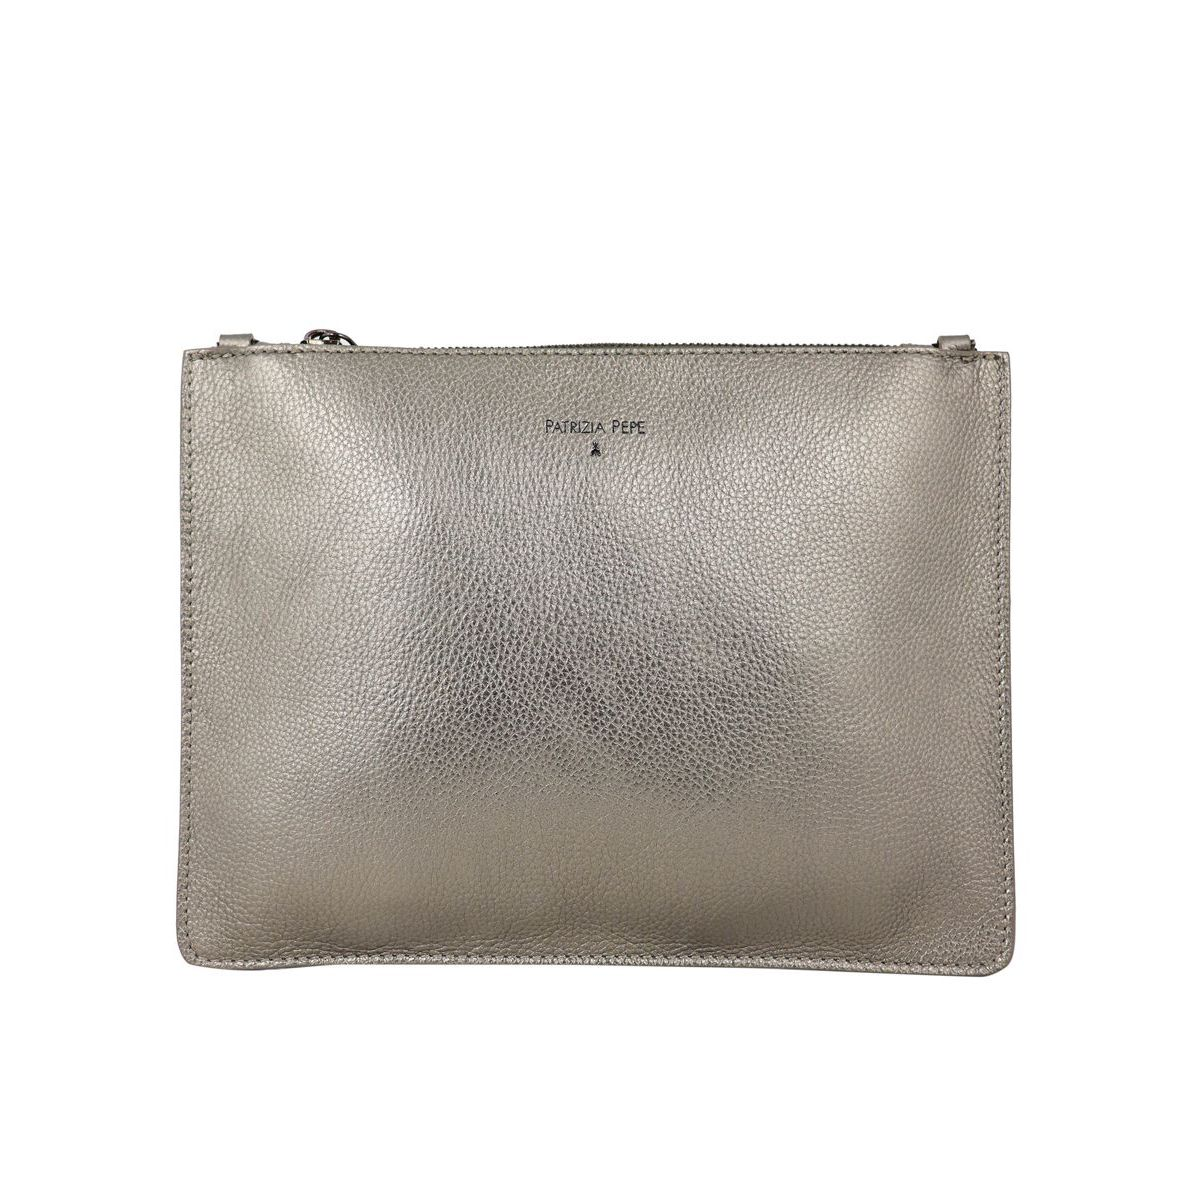 Flat shoulder bag in textured leather Bronze Patrizia Pepe